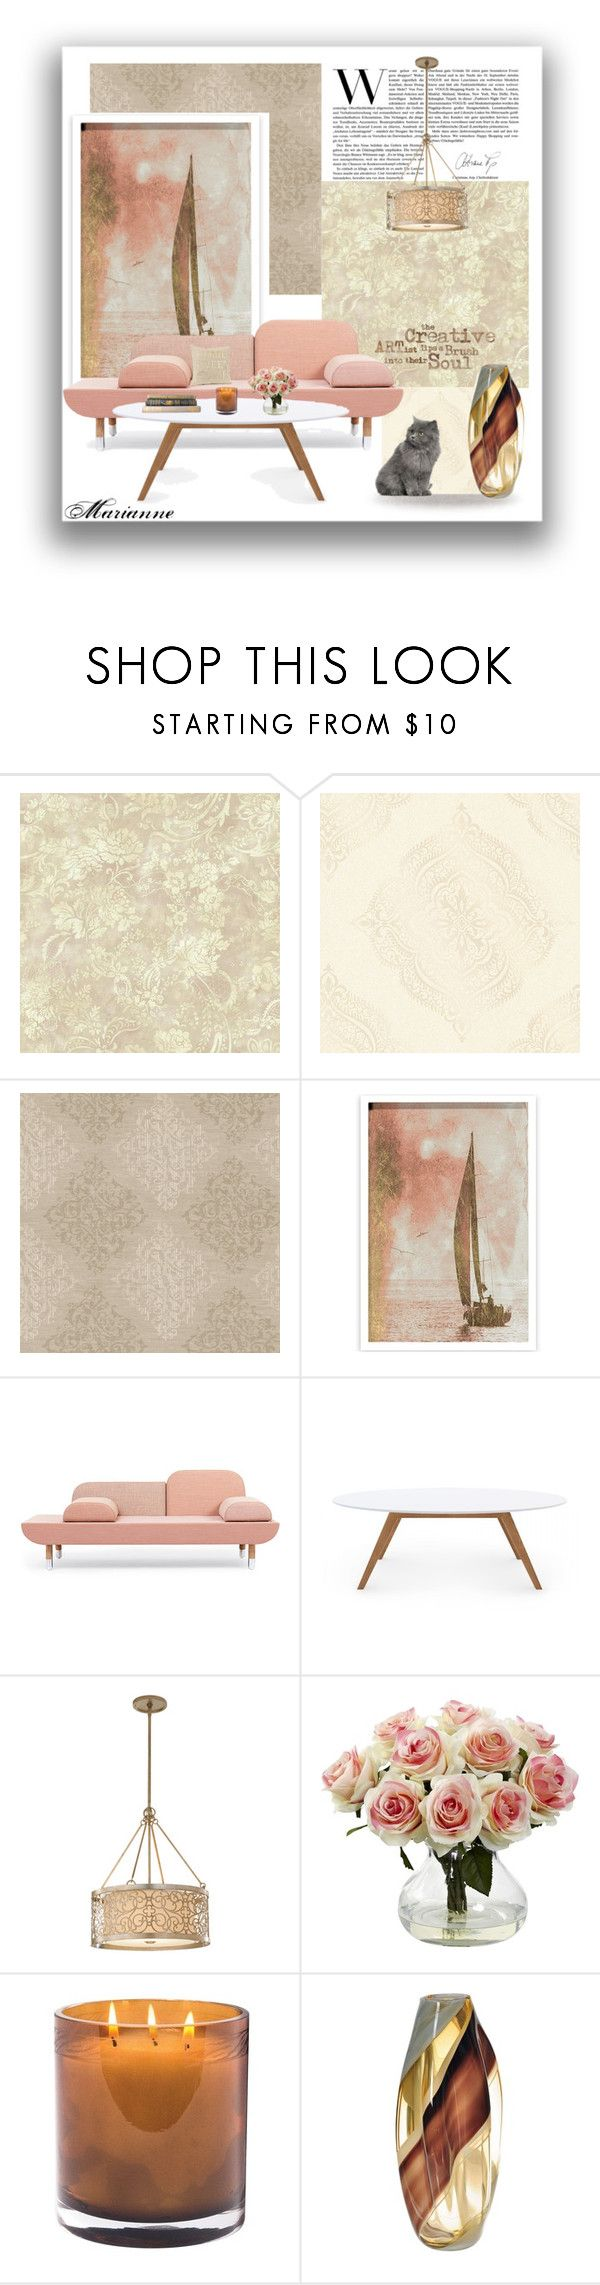 """Home 5"" by marianne-spiessens on Polyvore featuring interior, interiors, interior design, home, home decor, interior decorating, York Wallcoverings, Oliver Gal Artist Co., Rove Concepts and Murray Feiss"